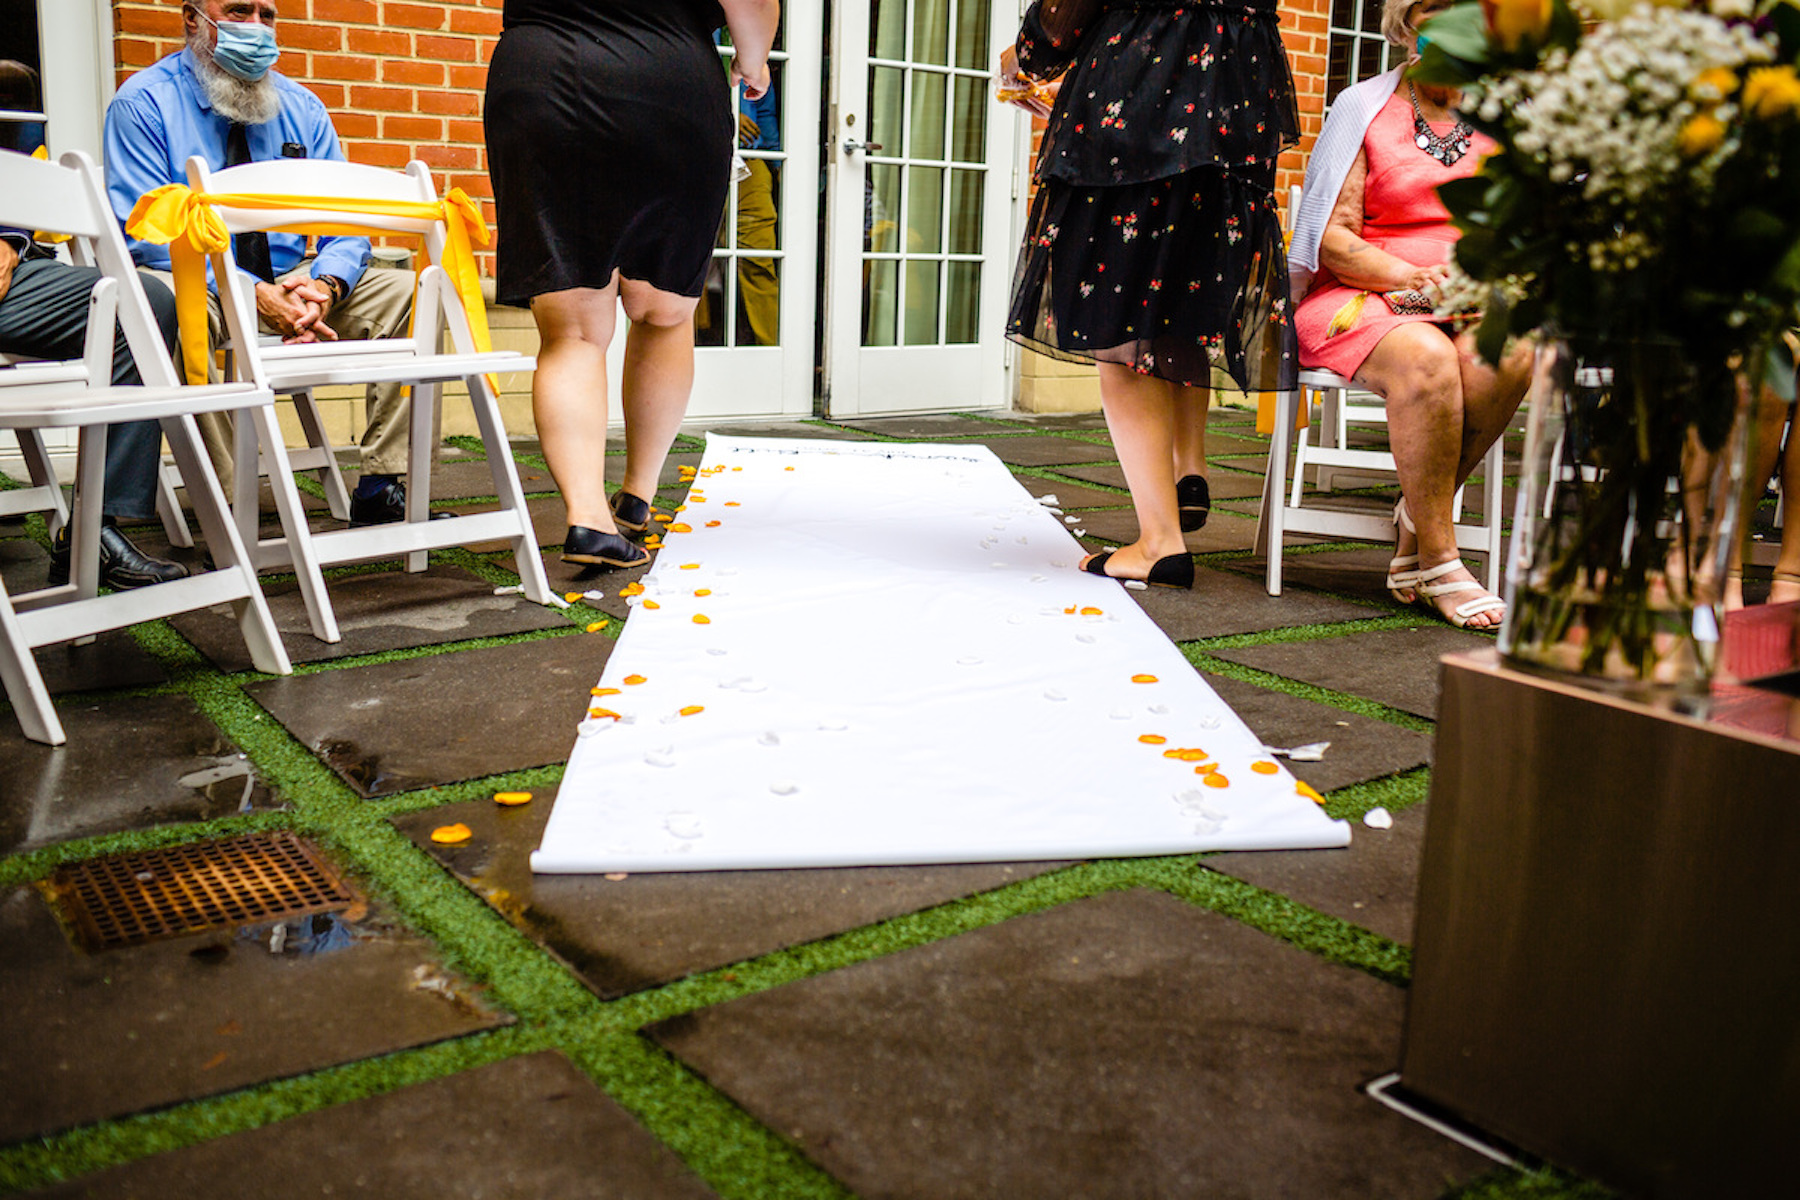 Outdoor Elopement Photographers in Alexandria, VA | The ceremony is about to begin, and the guests sit on either side of the outdoor aisle